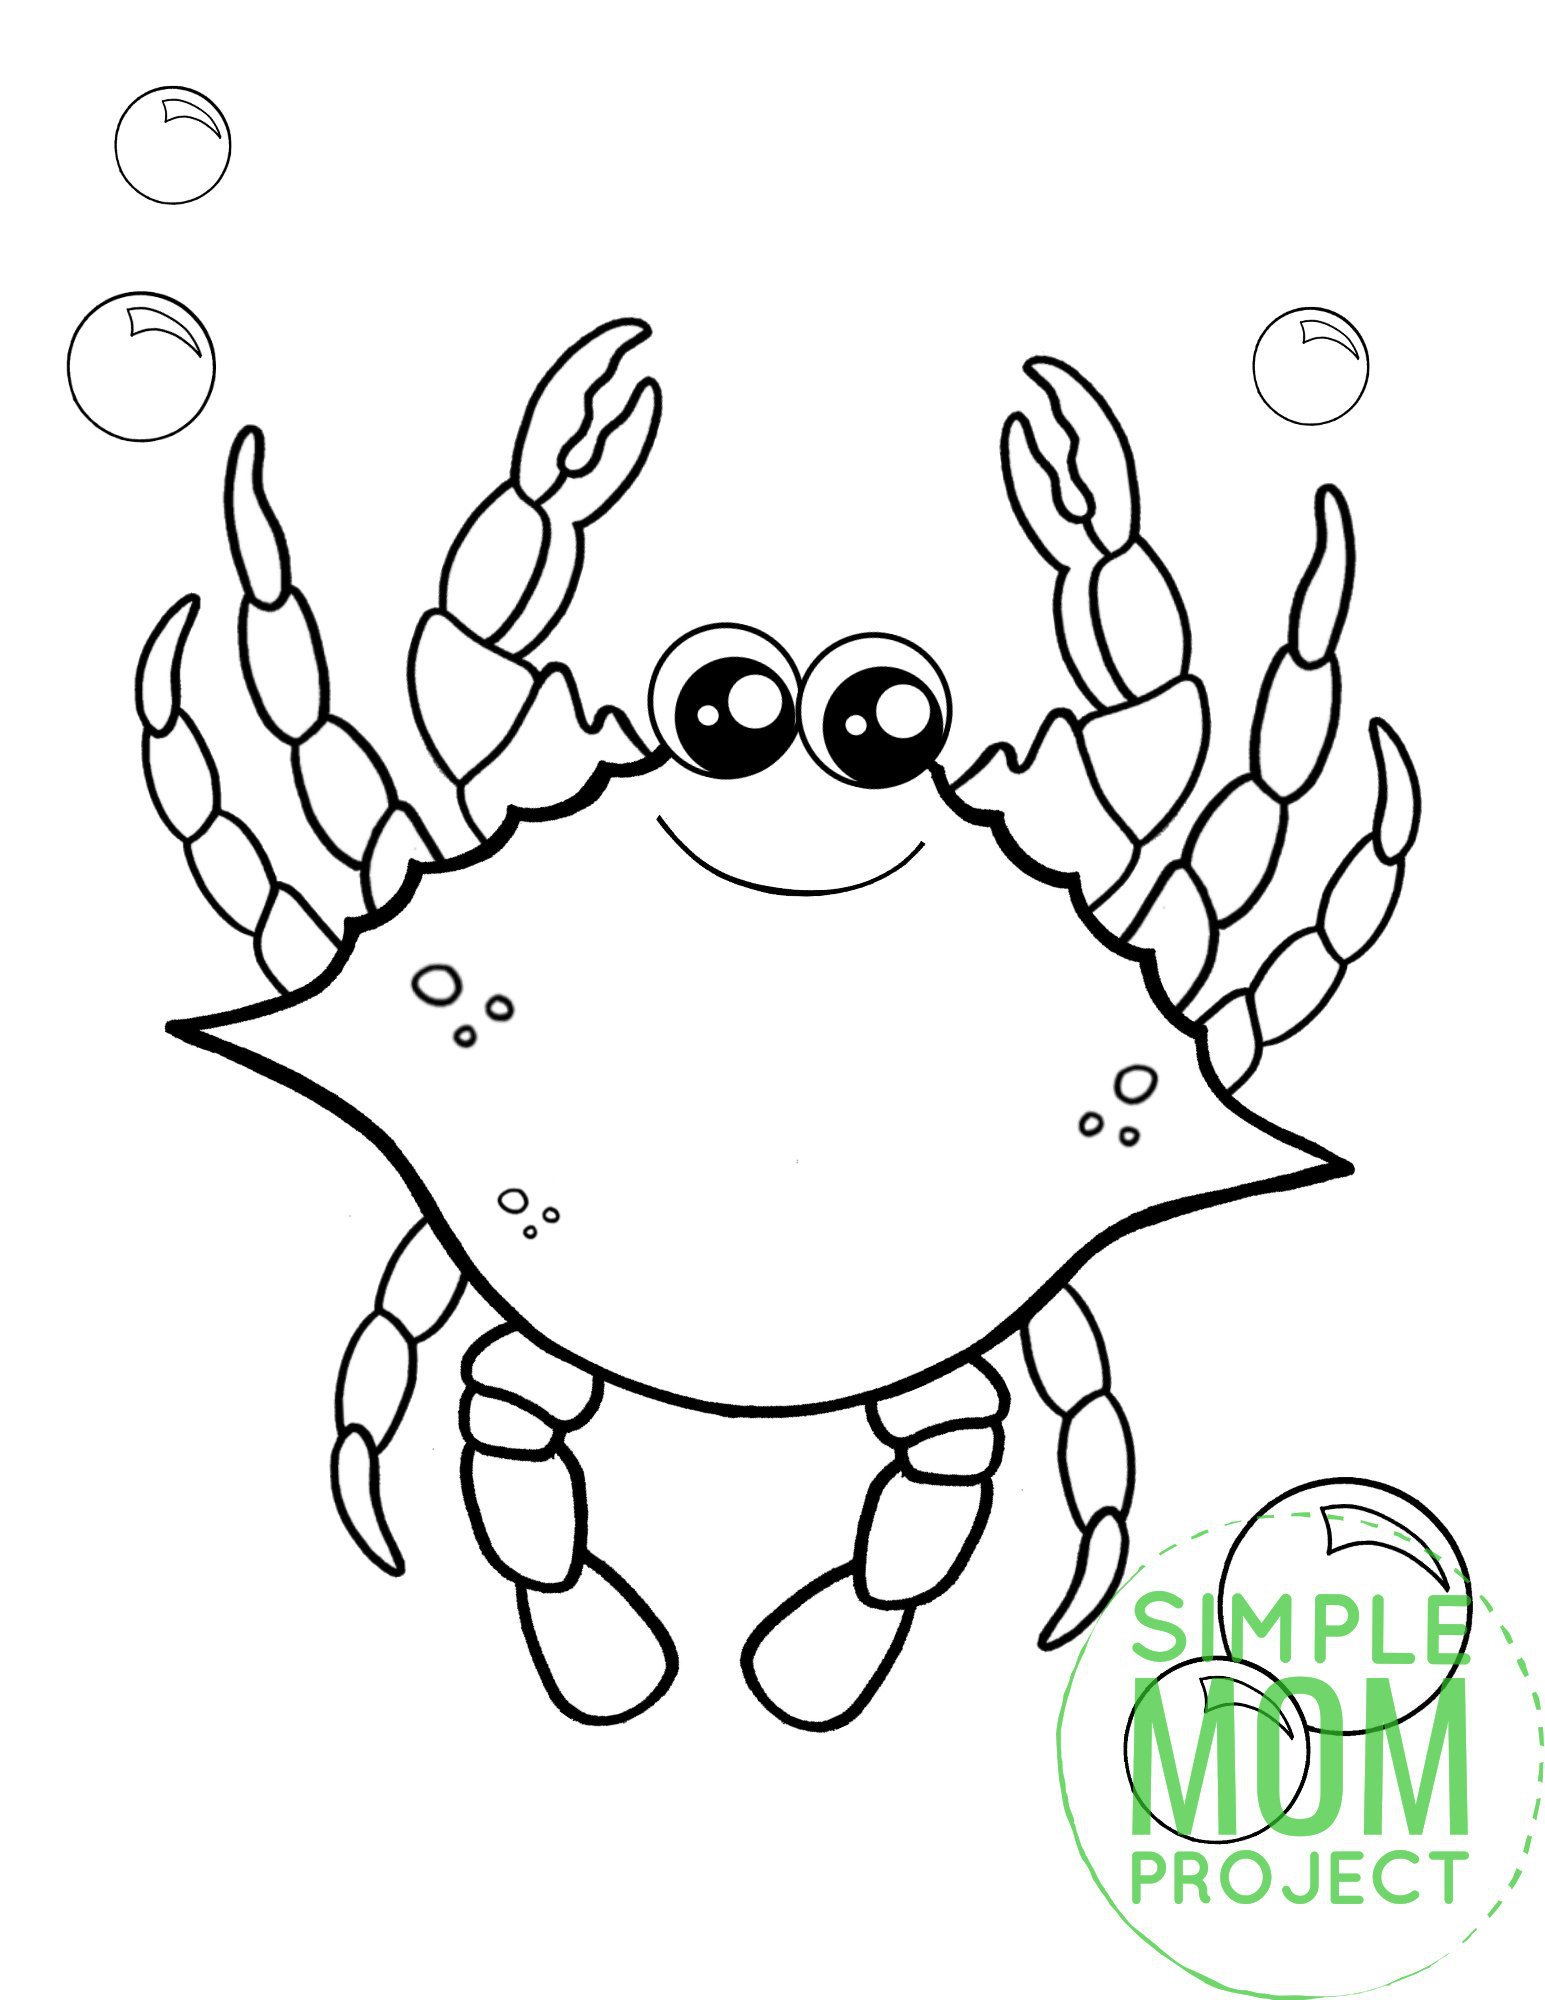 Free Printable Blue Crab Ocean Animal Coloring Page for Kids